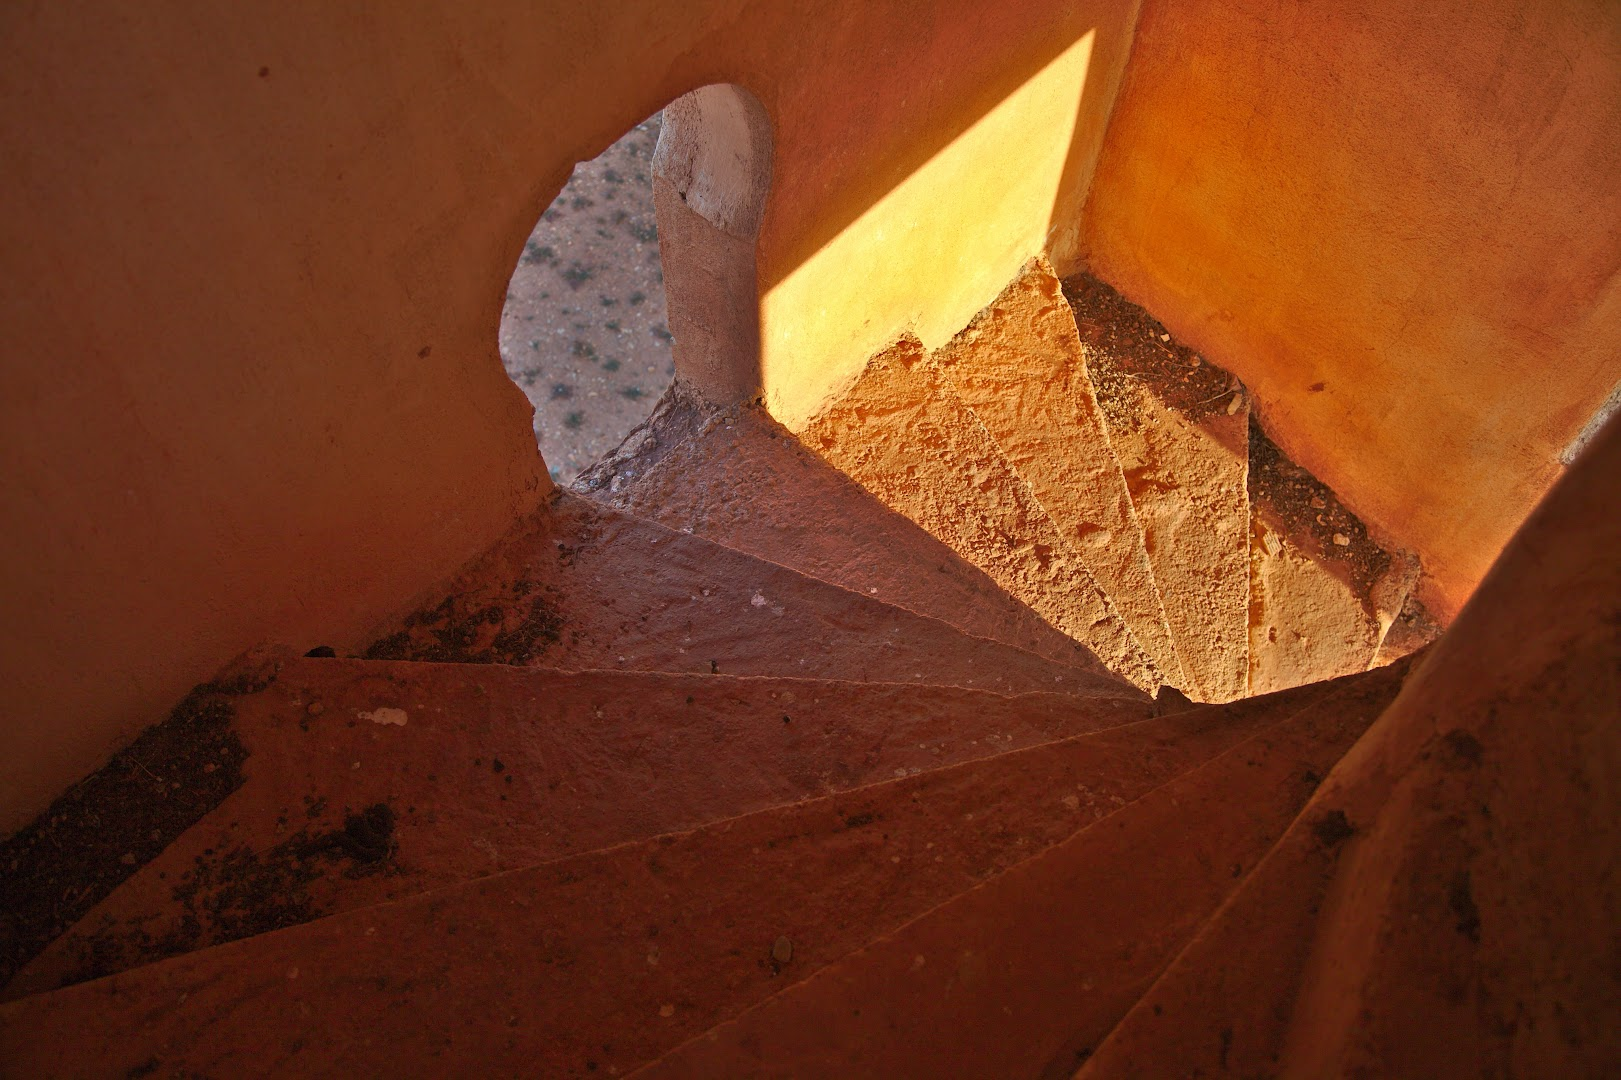 Stairway from the devine world back to Earth